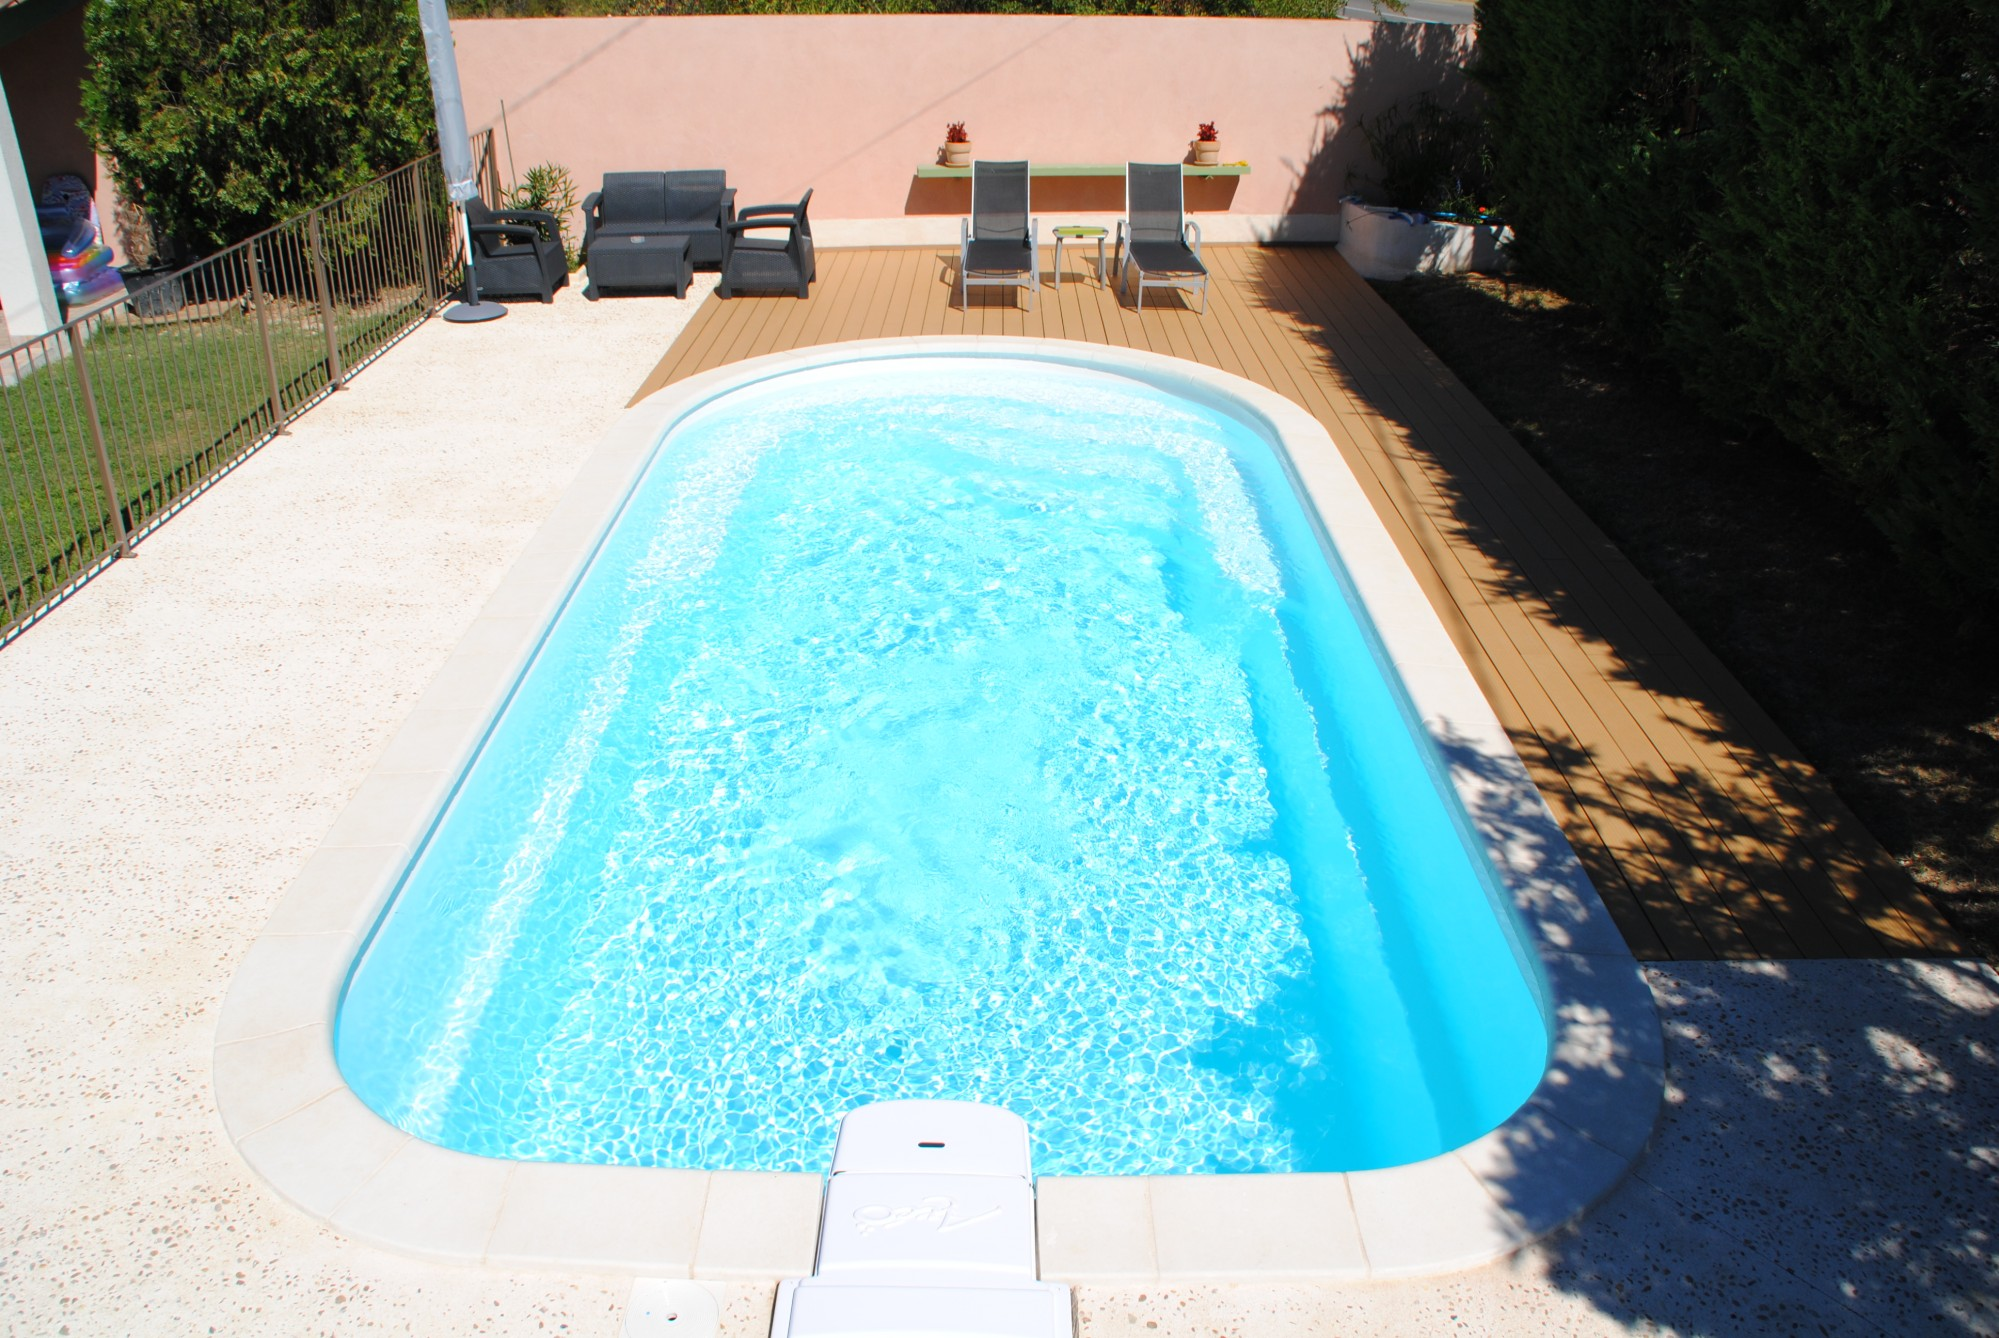 Piscine coque polyester a fond plat avec banquettes modele for Destockage piscine coque polyester